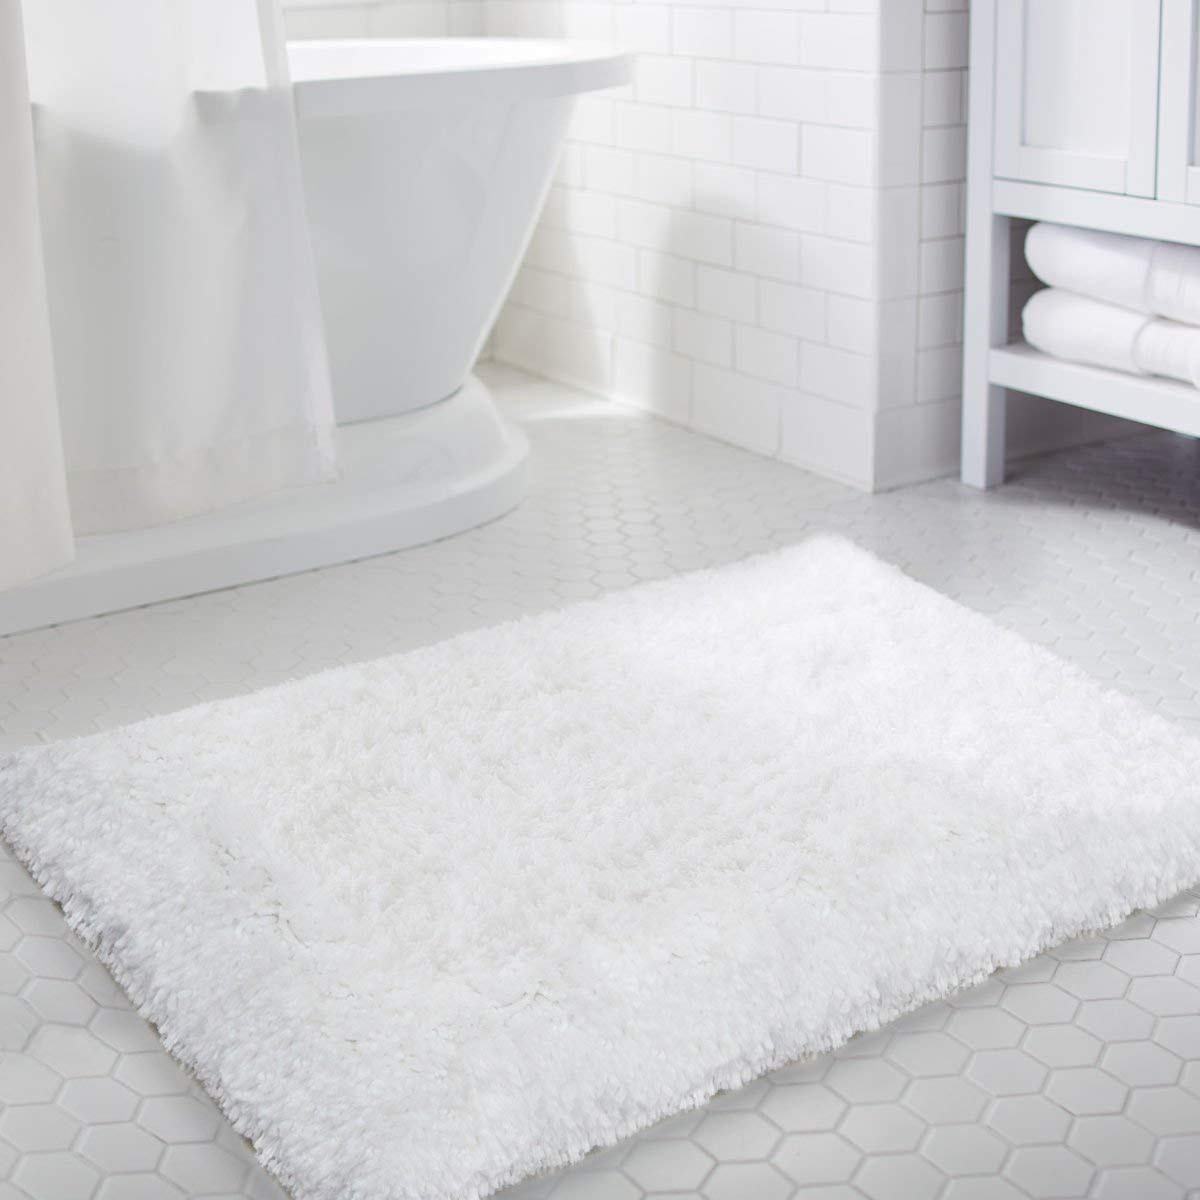 LOCHAS Luxury Soft Bathroom Rug Non-Skid Rubber Back Water Absorbable Bath Mat Decorative (1.6' x 2.6')